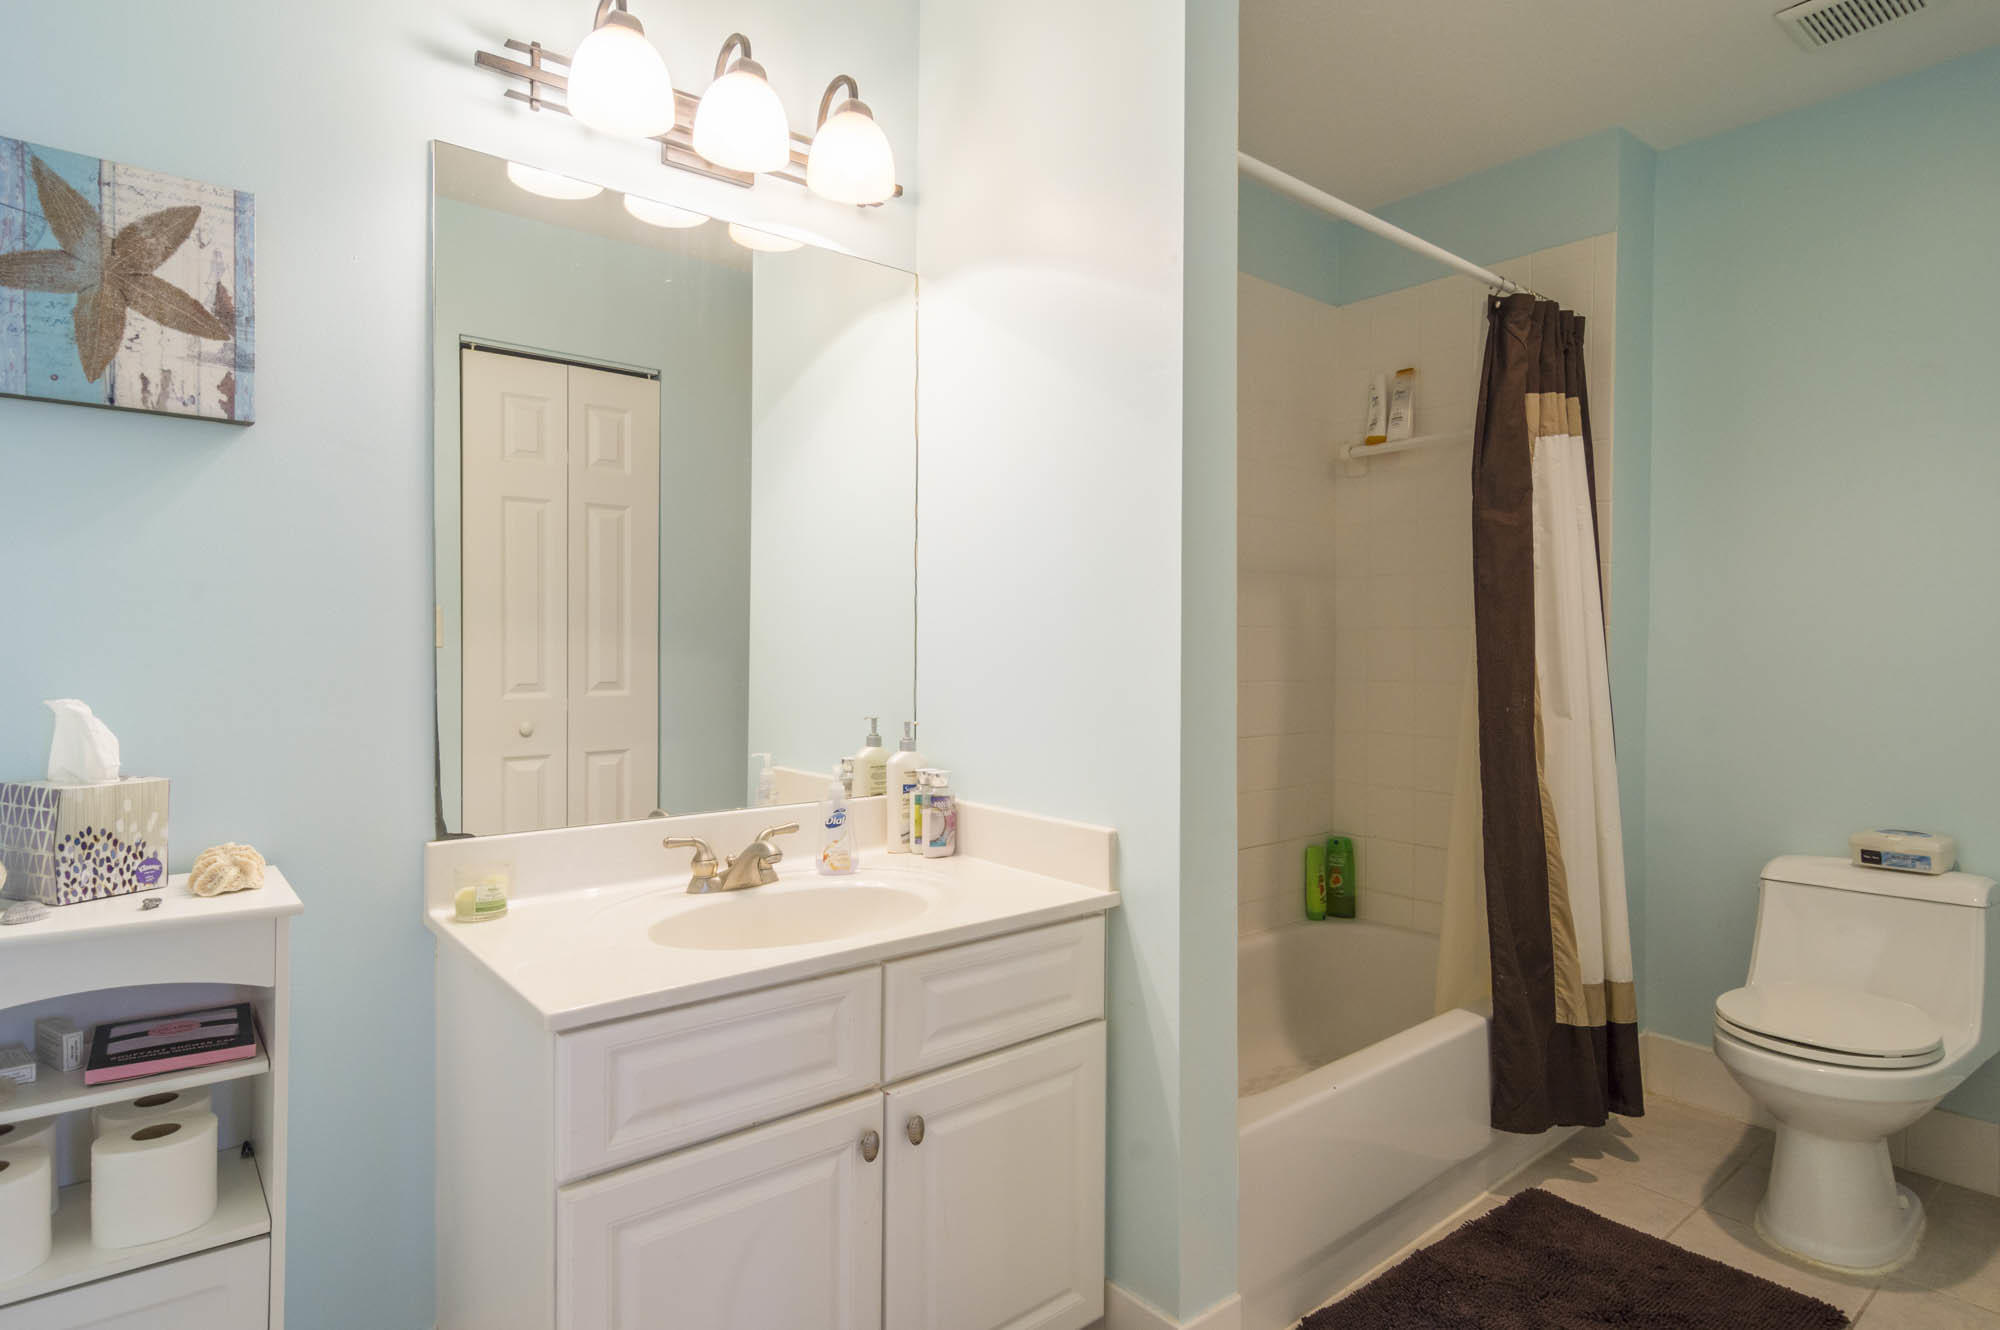 1153 Town Center Drive 302  - Abacoa Homes - photo 17